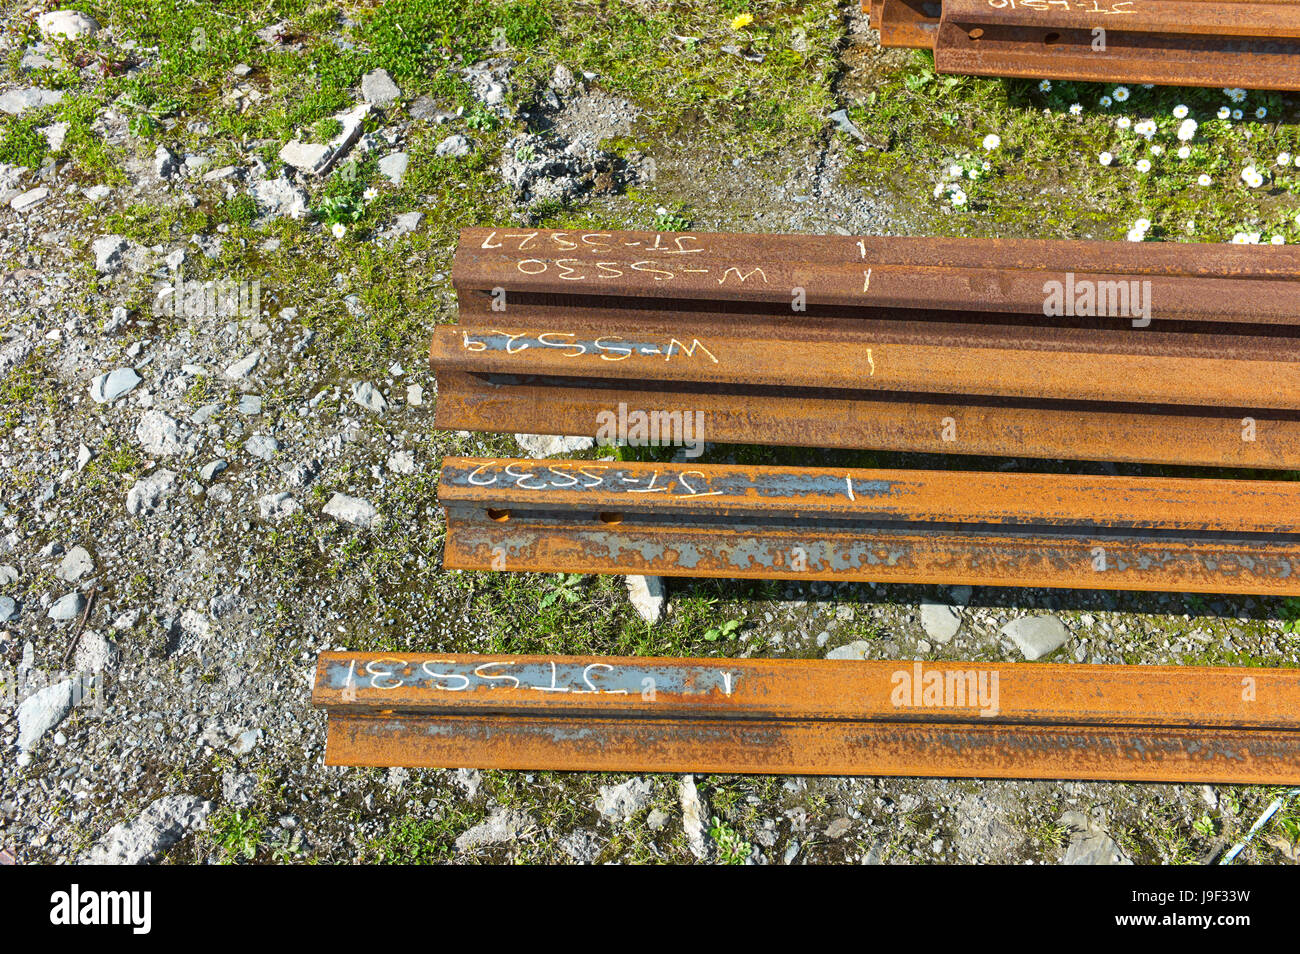 Metal railway lines for electric trains in Douglas, Isle of Man Stock Photo